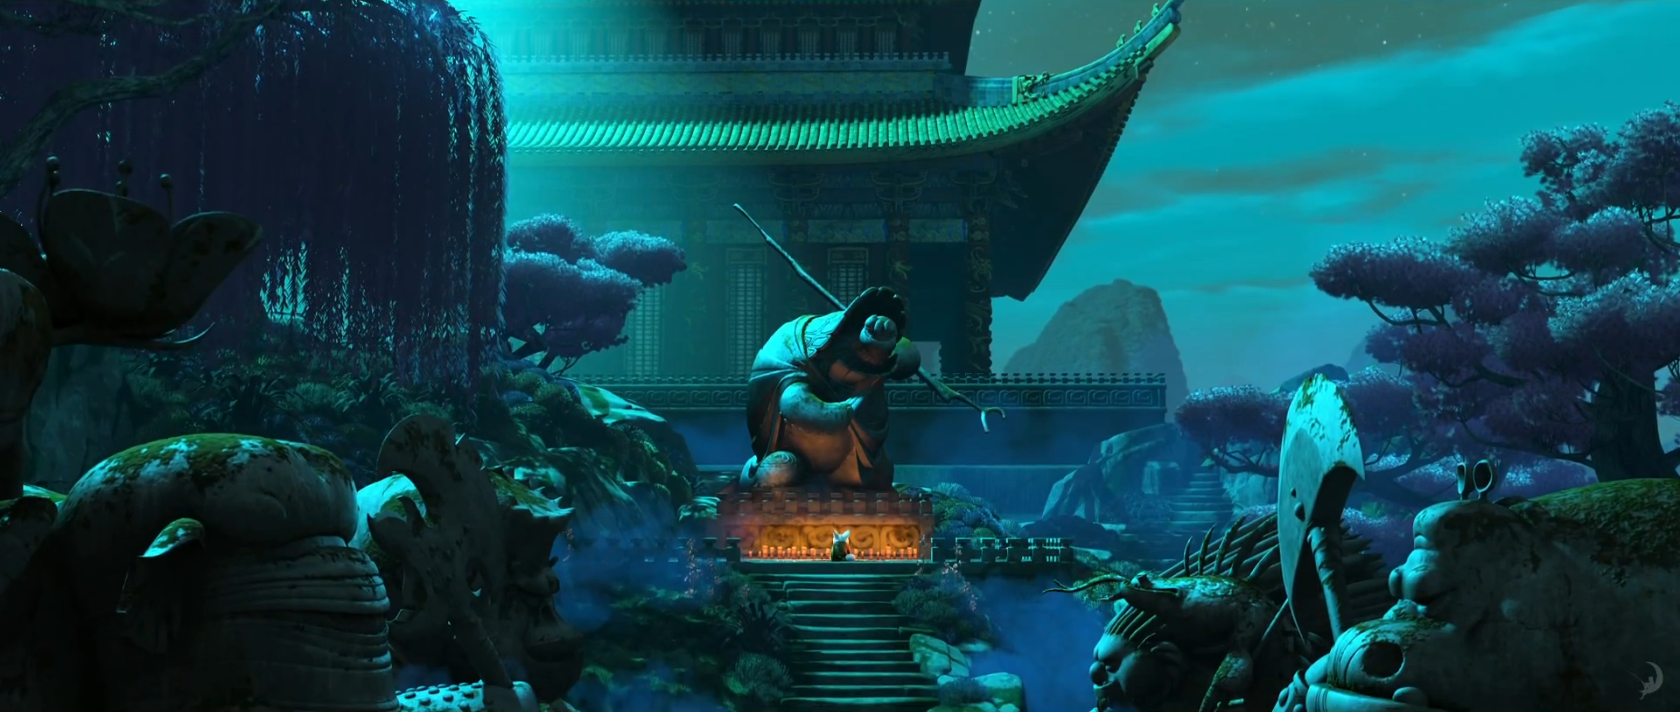 Category Images Of The Master Garden Kung Fu Panda Wiki Fandom